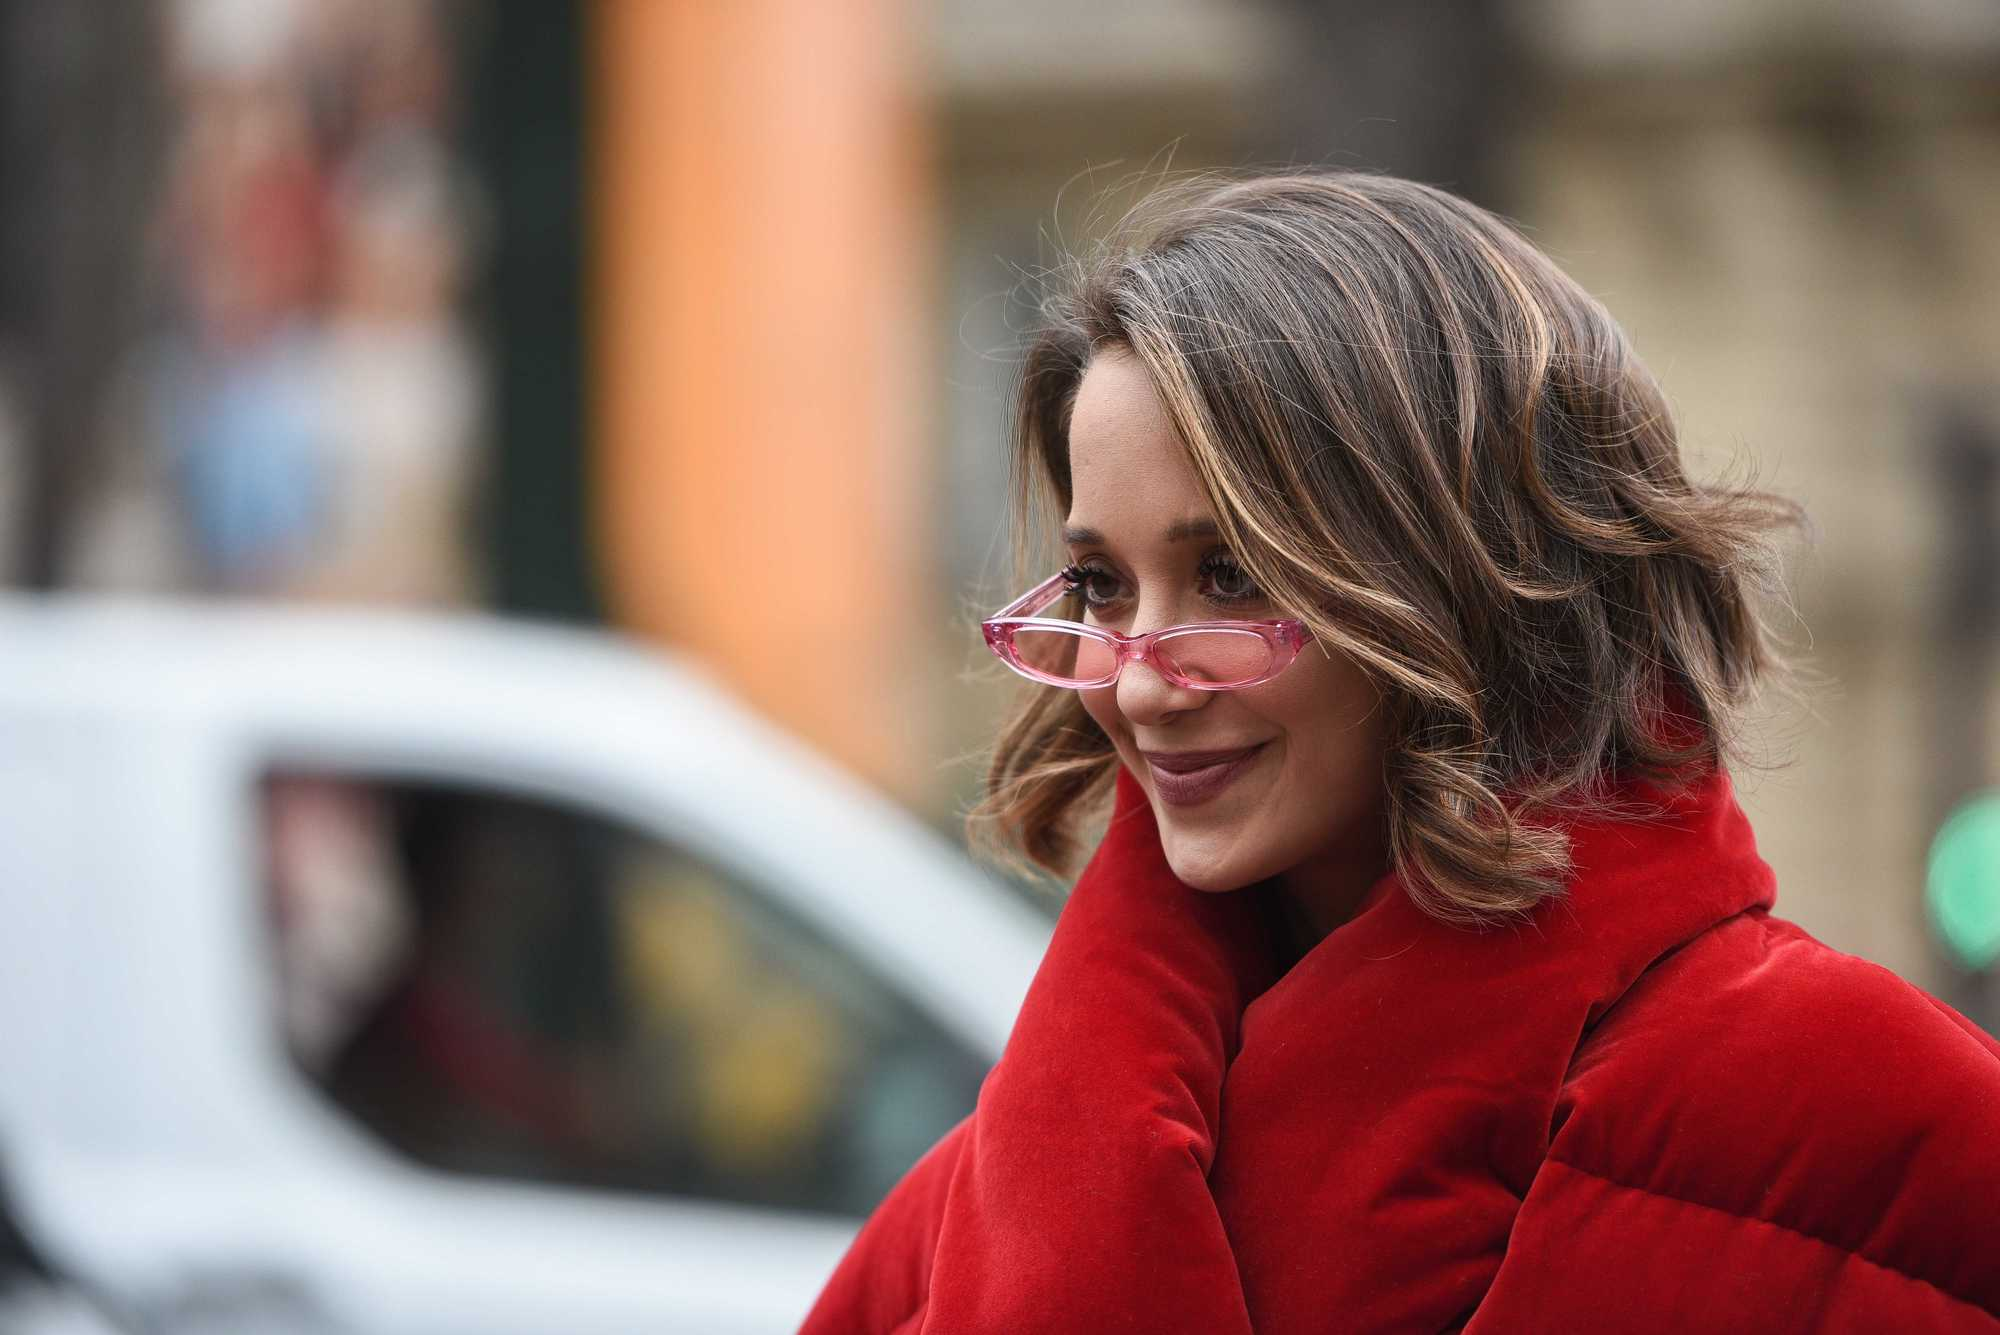 Lana El Sahely with short caramel brown hair styled into loose curls, wearing micro sunglasses and a red velvet jacket, posing on the street